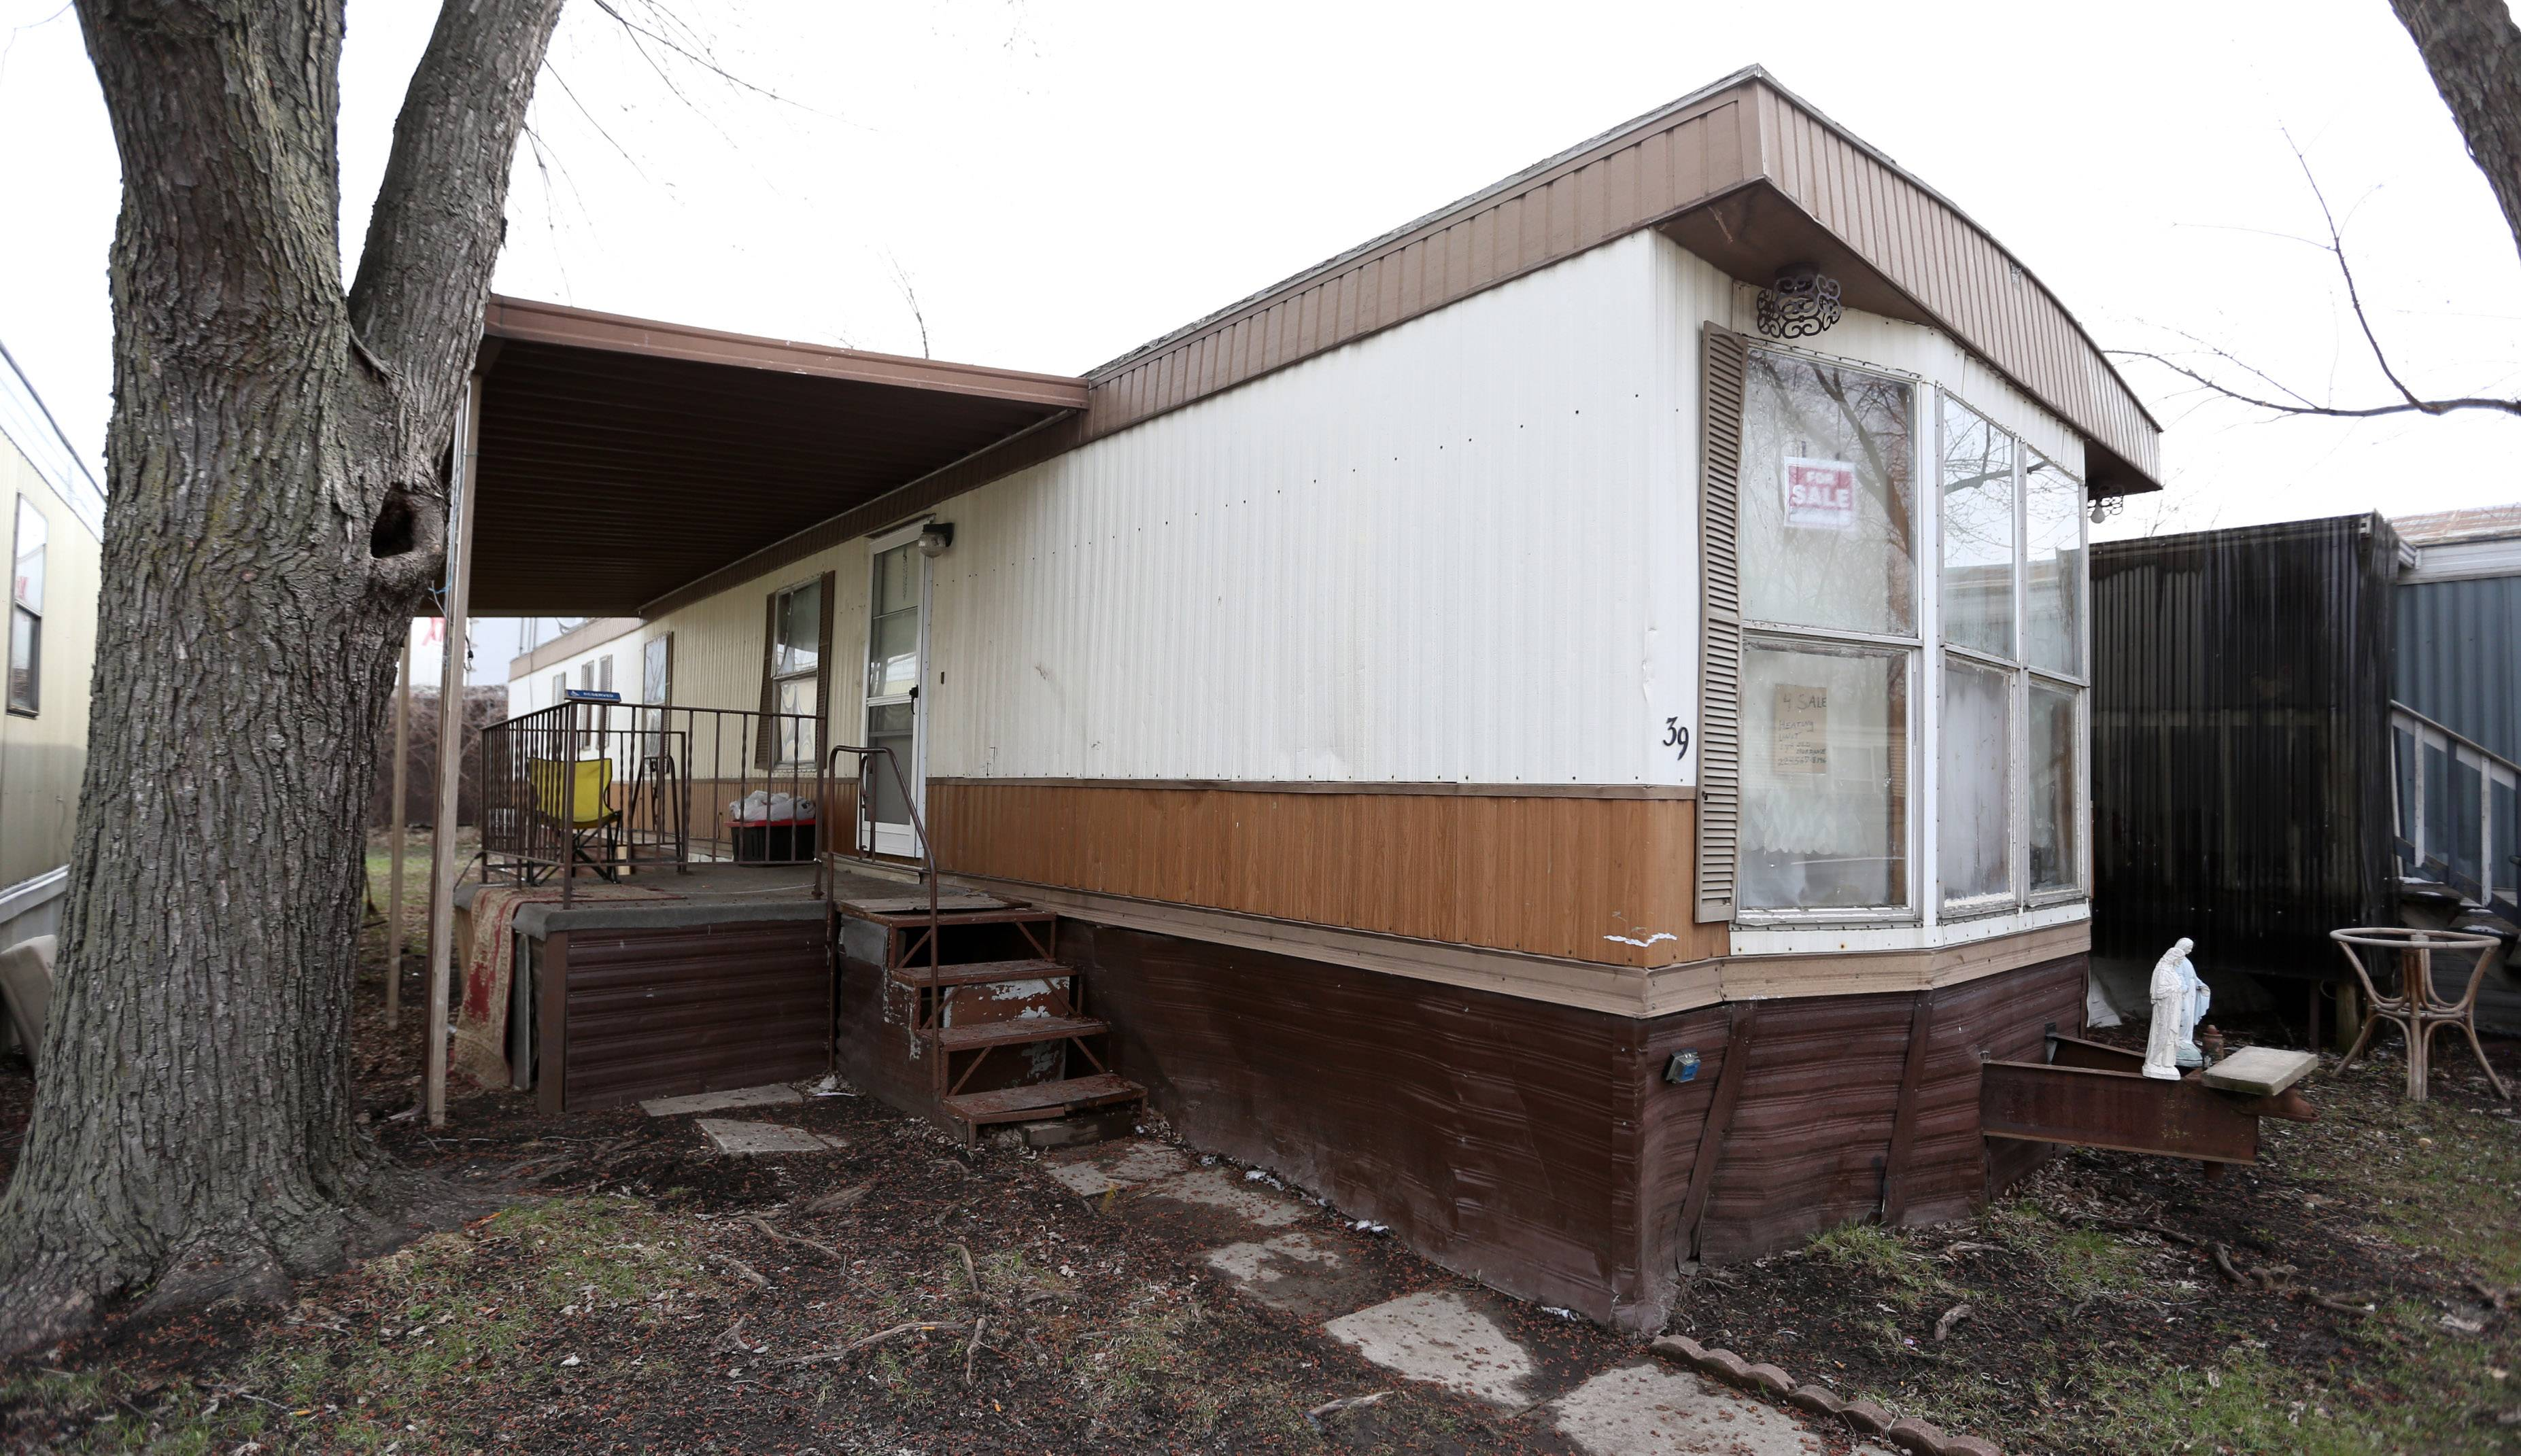 A year after nearly 6 inches of rain led to record flooding in and around Des Plaines, Michael Masalski and Marjorie Branly still live in this trailer with rotted floor boards and mold.